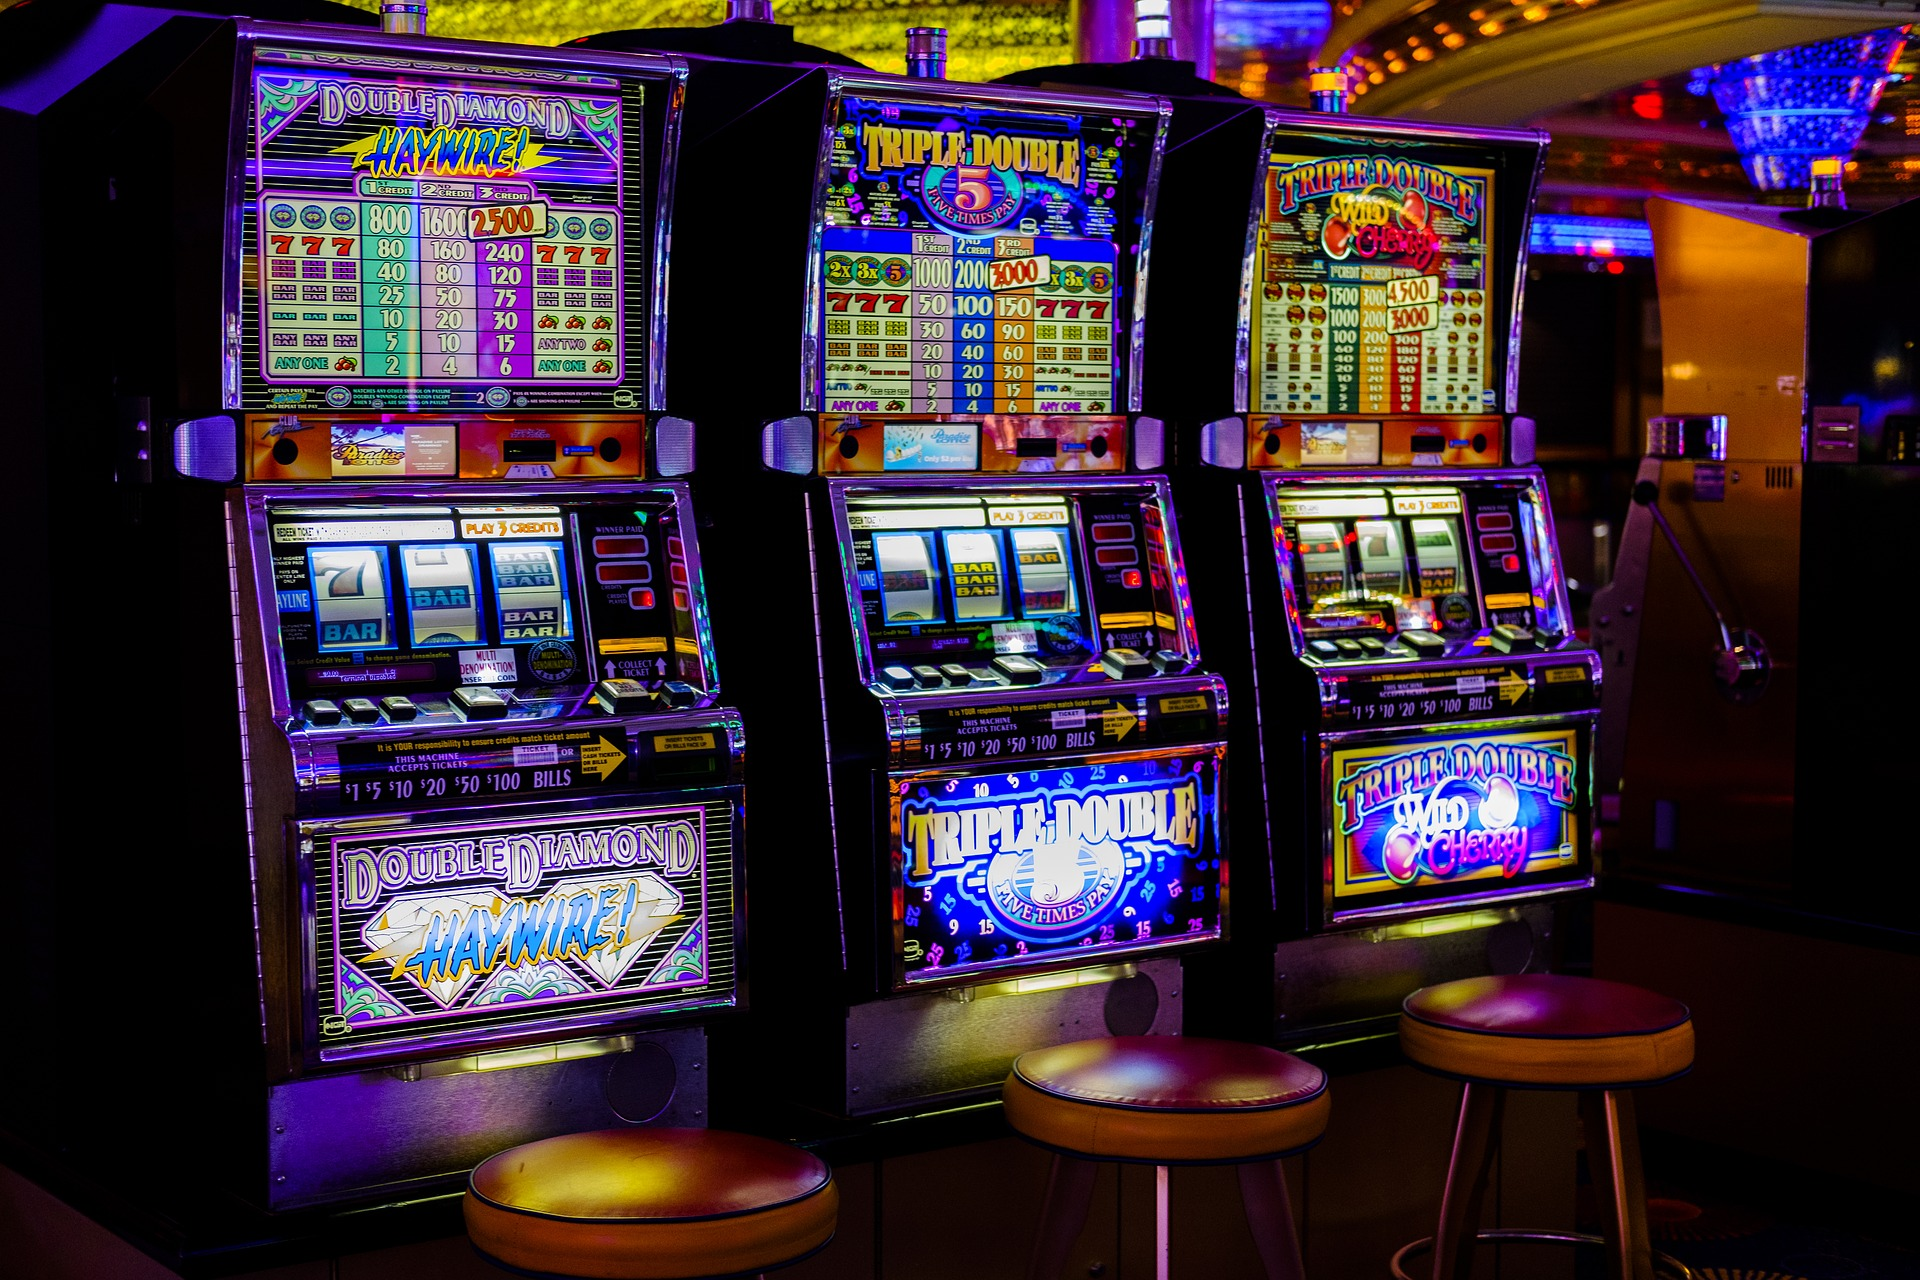 Guidance on how to play online slots to win